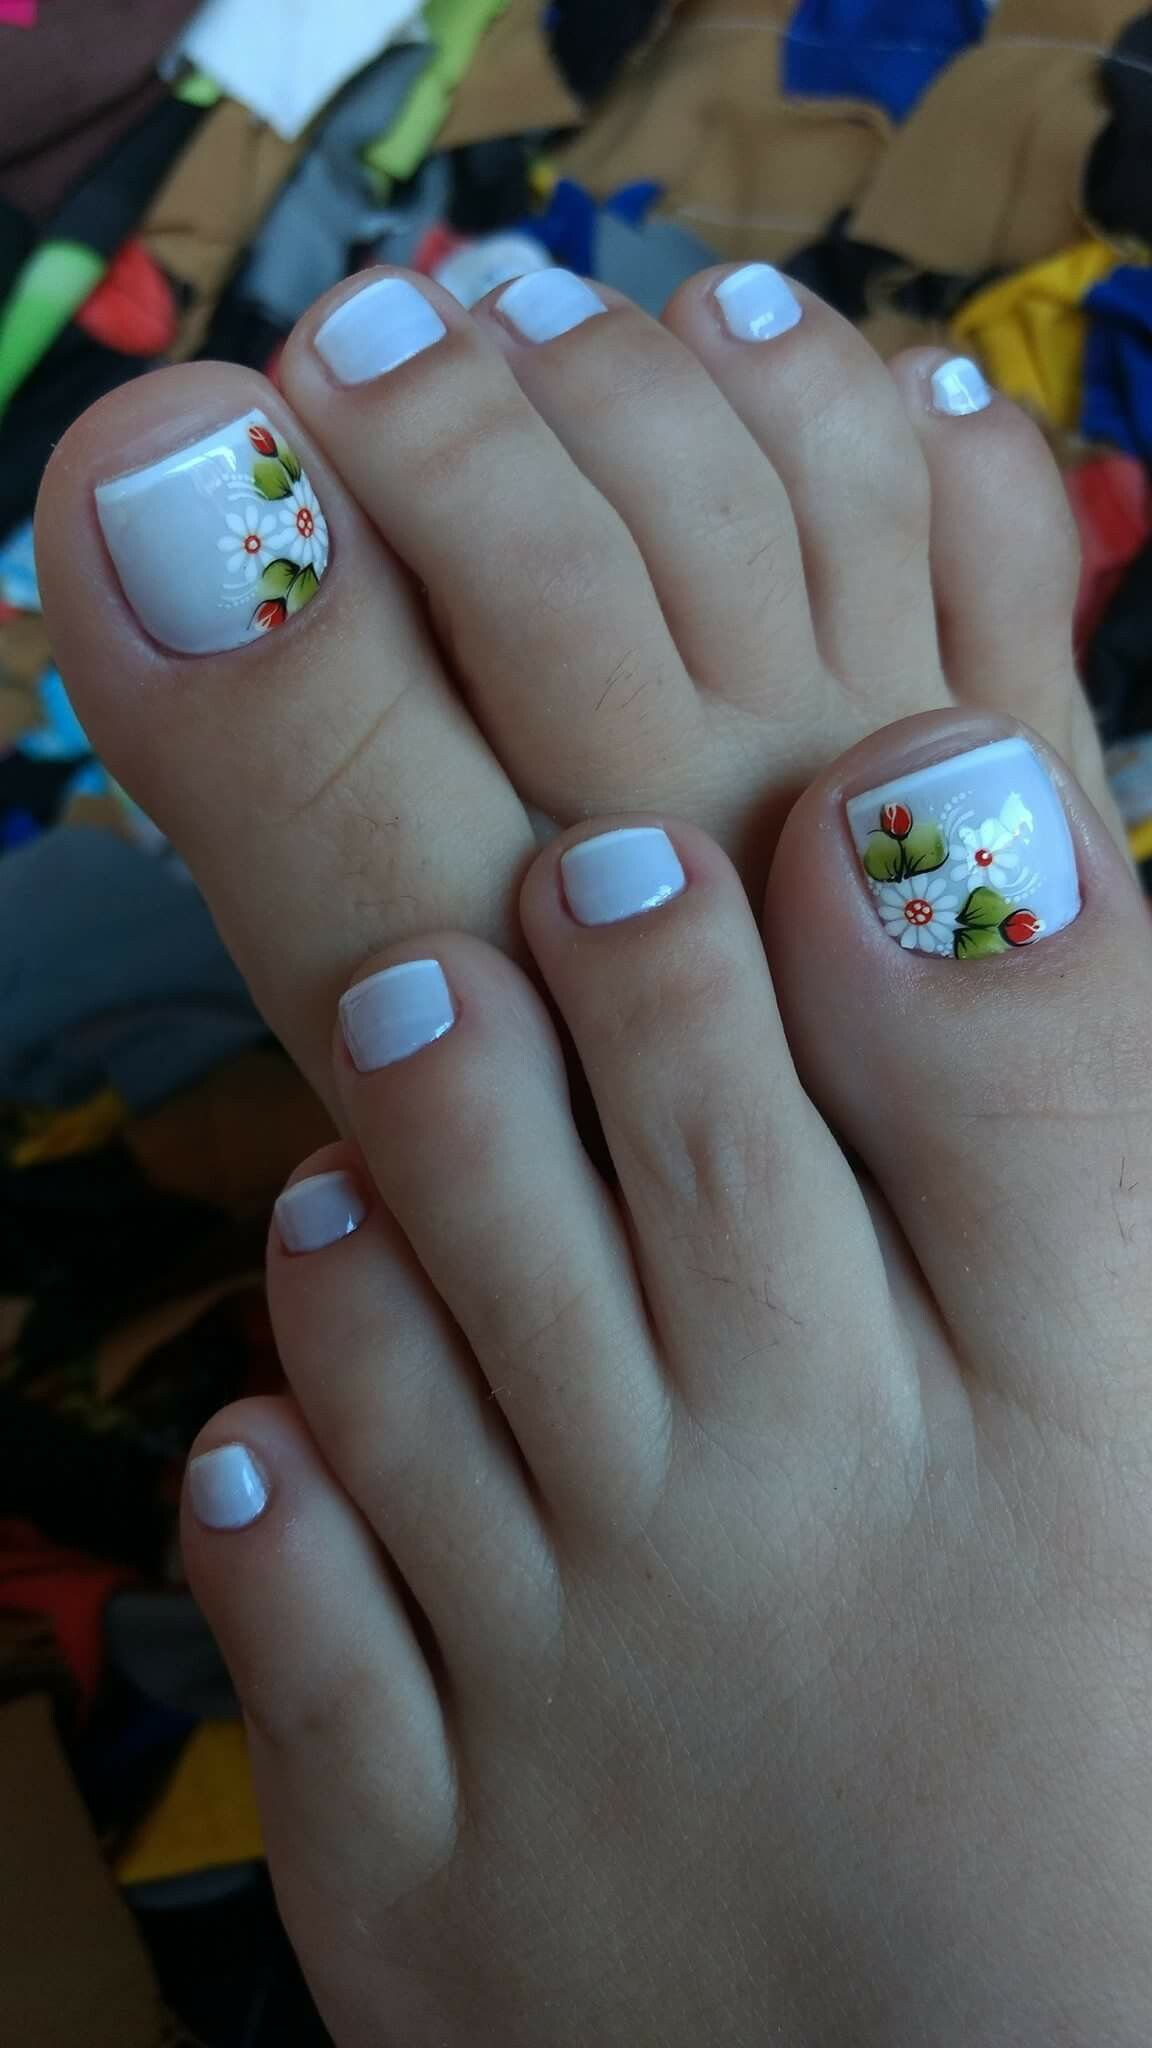 Pin by Andrea Quintana on Pedicura | Pinterest | Pedicures, Manicure ...